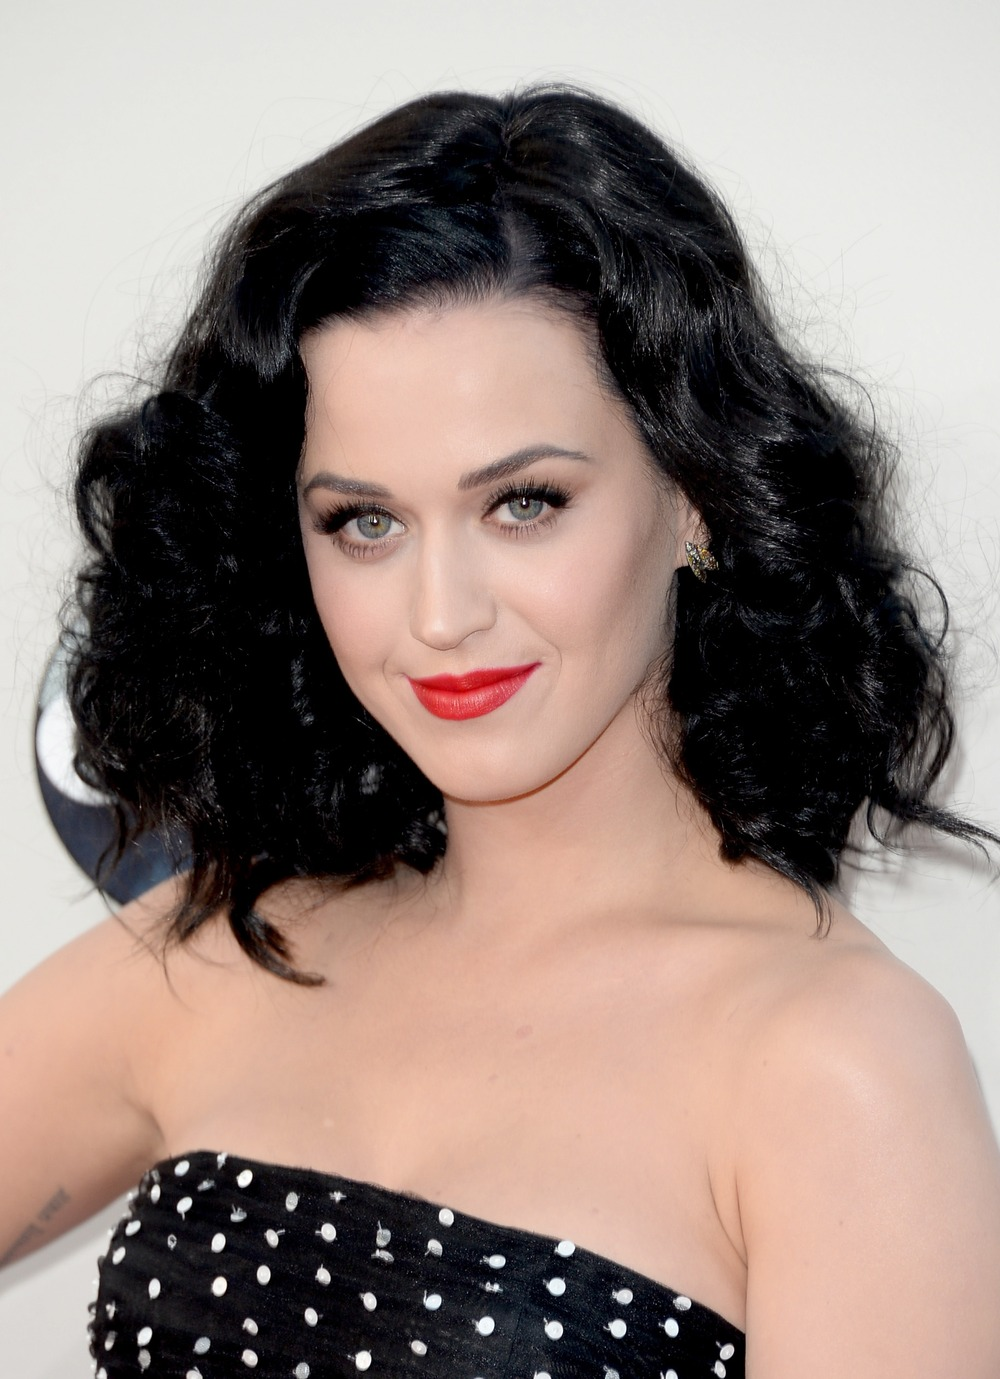 Katy Perry Starts Her Own Record Label —And Announces Her First Artist (VIDEO)